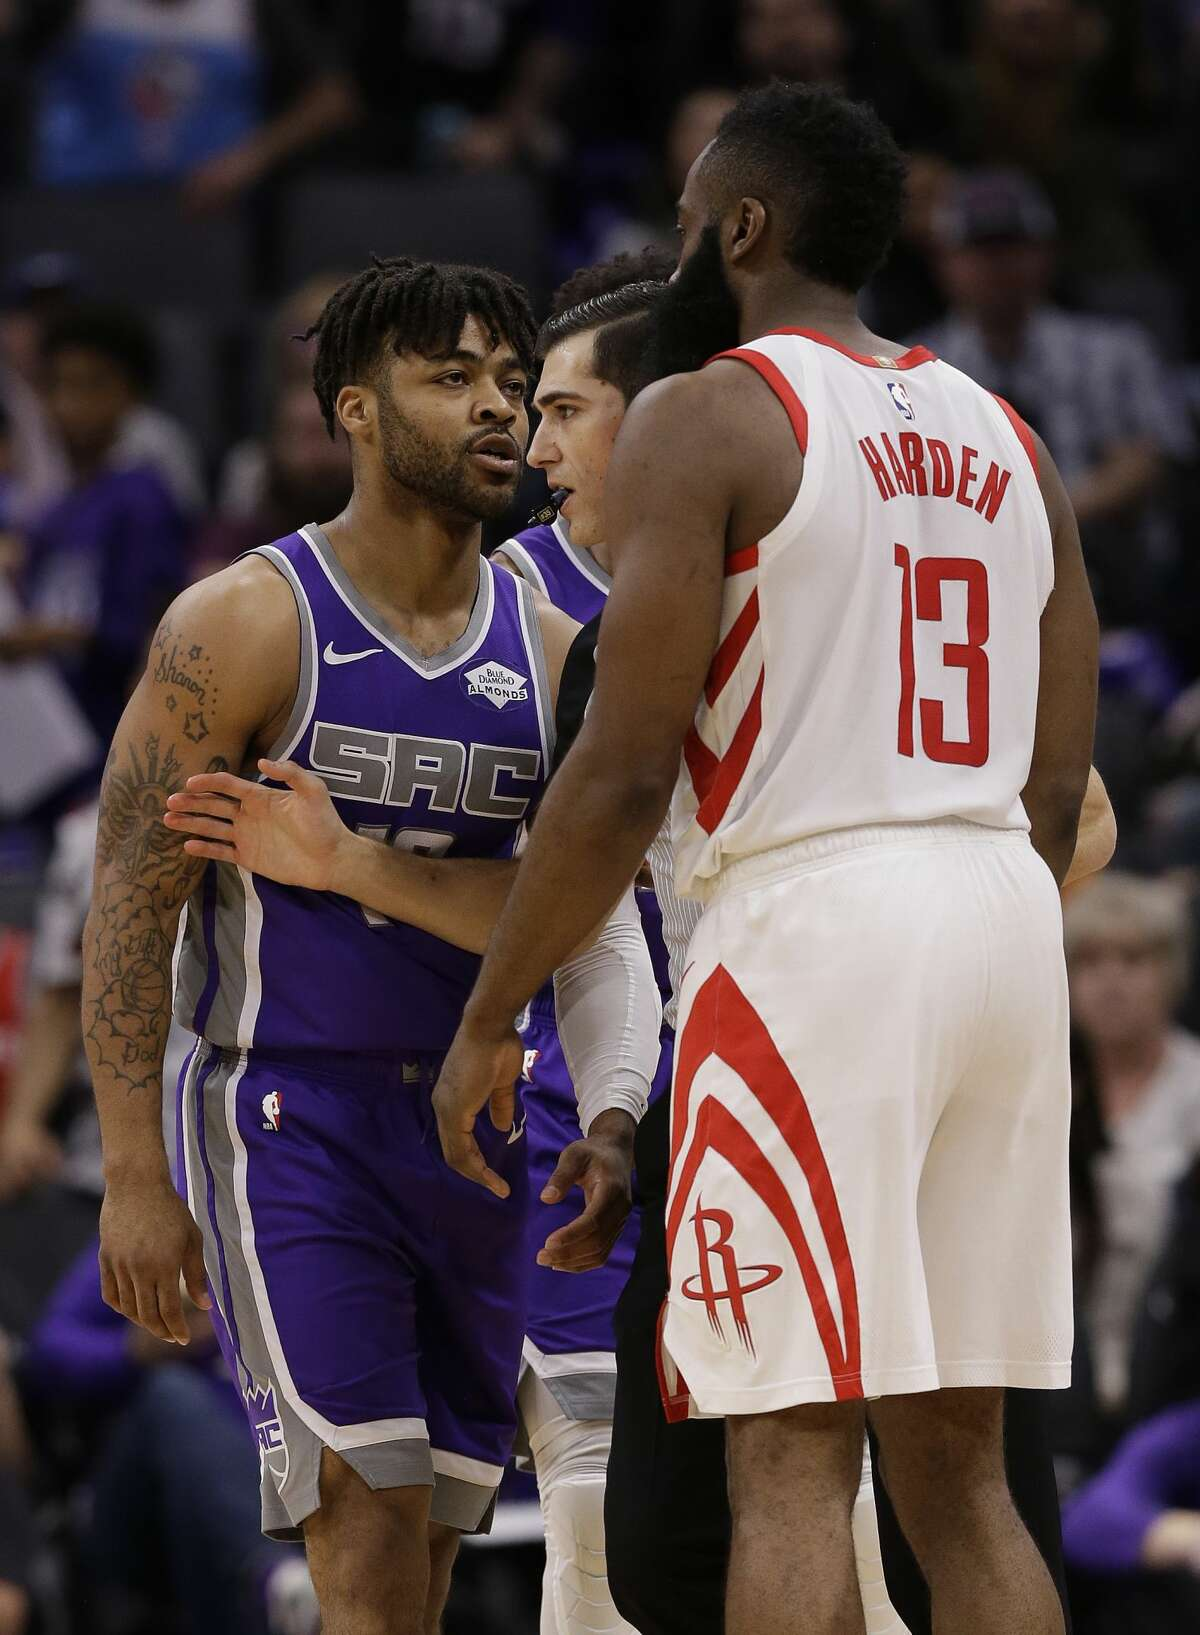 Referee Jason Goldenberg, center steps between Sacramento Kings guard Frank Mason III, left, and Houston Rockets guard James Harden as they exchanged heated words during the second half of an NBA basketball game Wednesday, Feb. 6, 2019, in Sacramento, Calif. The Rockets won 127-101. (AP Photo/Rich Pedroncelli)